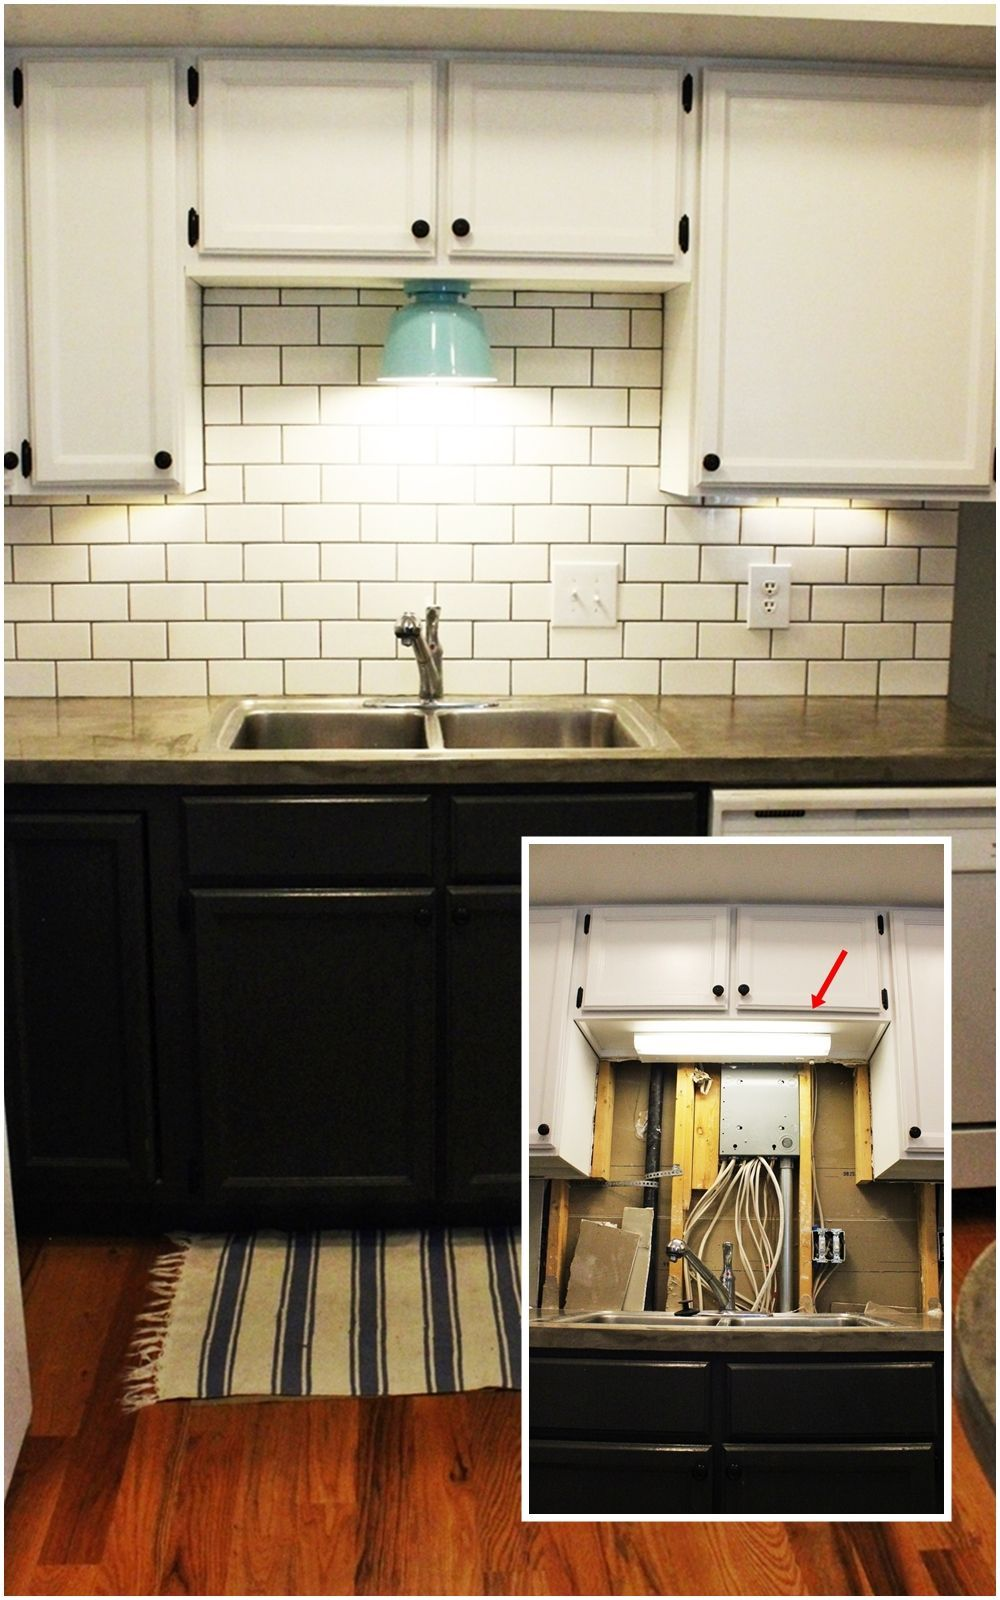 under counter lighting kitchen. DIY Kitchen Lighting Upgrade: LED Under-Cabinet Lights \u0026 Above-the-Sink Light Under Counter S